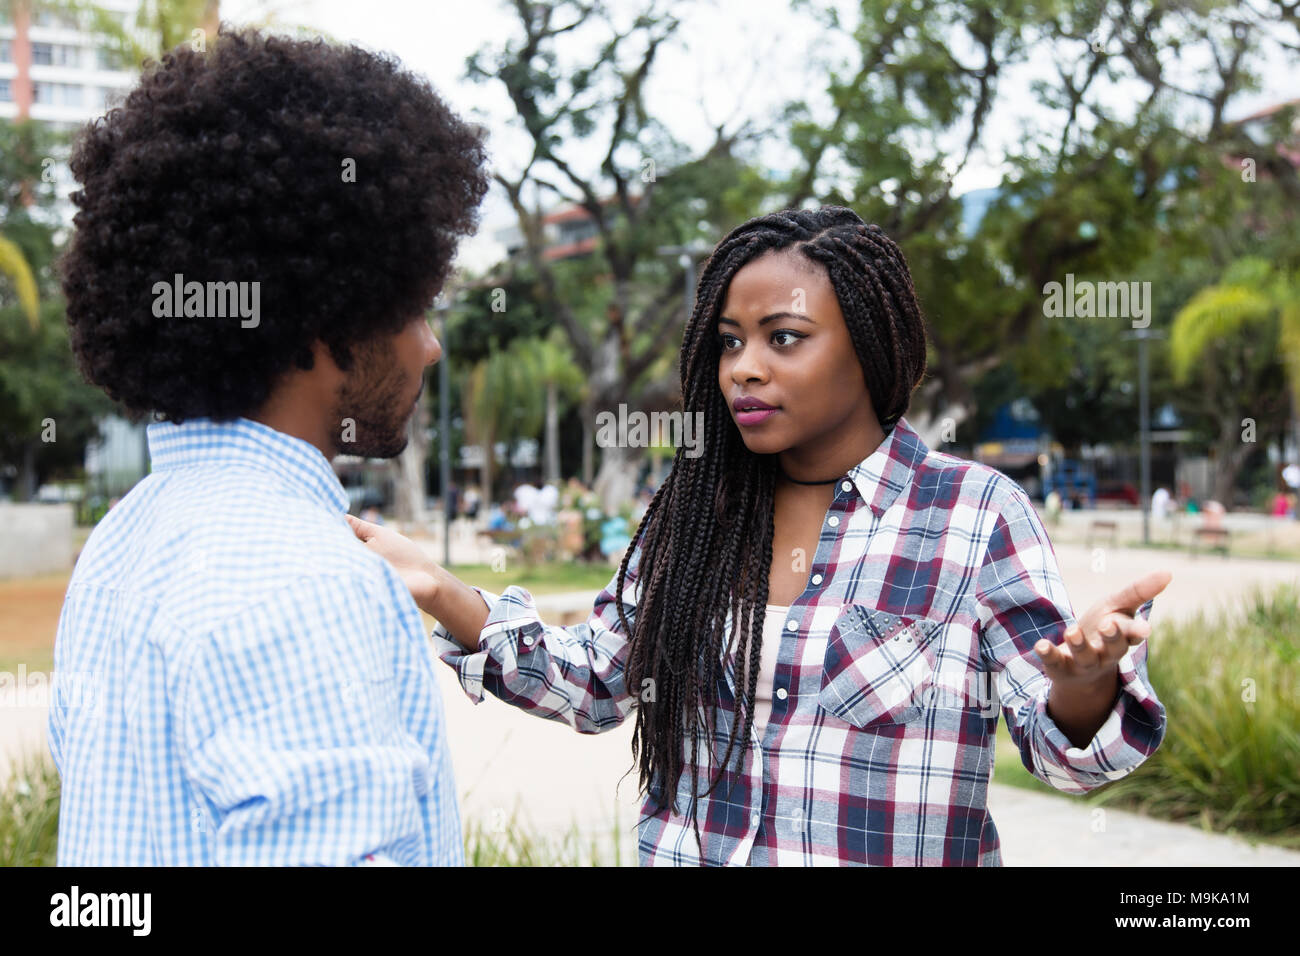 African american couple with relationship difficulties outdoors in the city - Stock Image